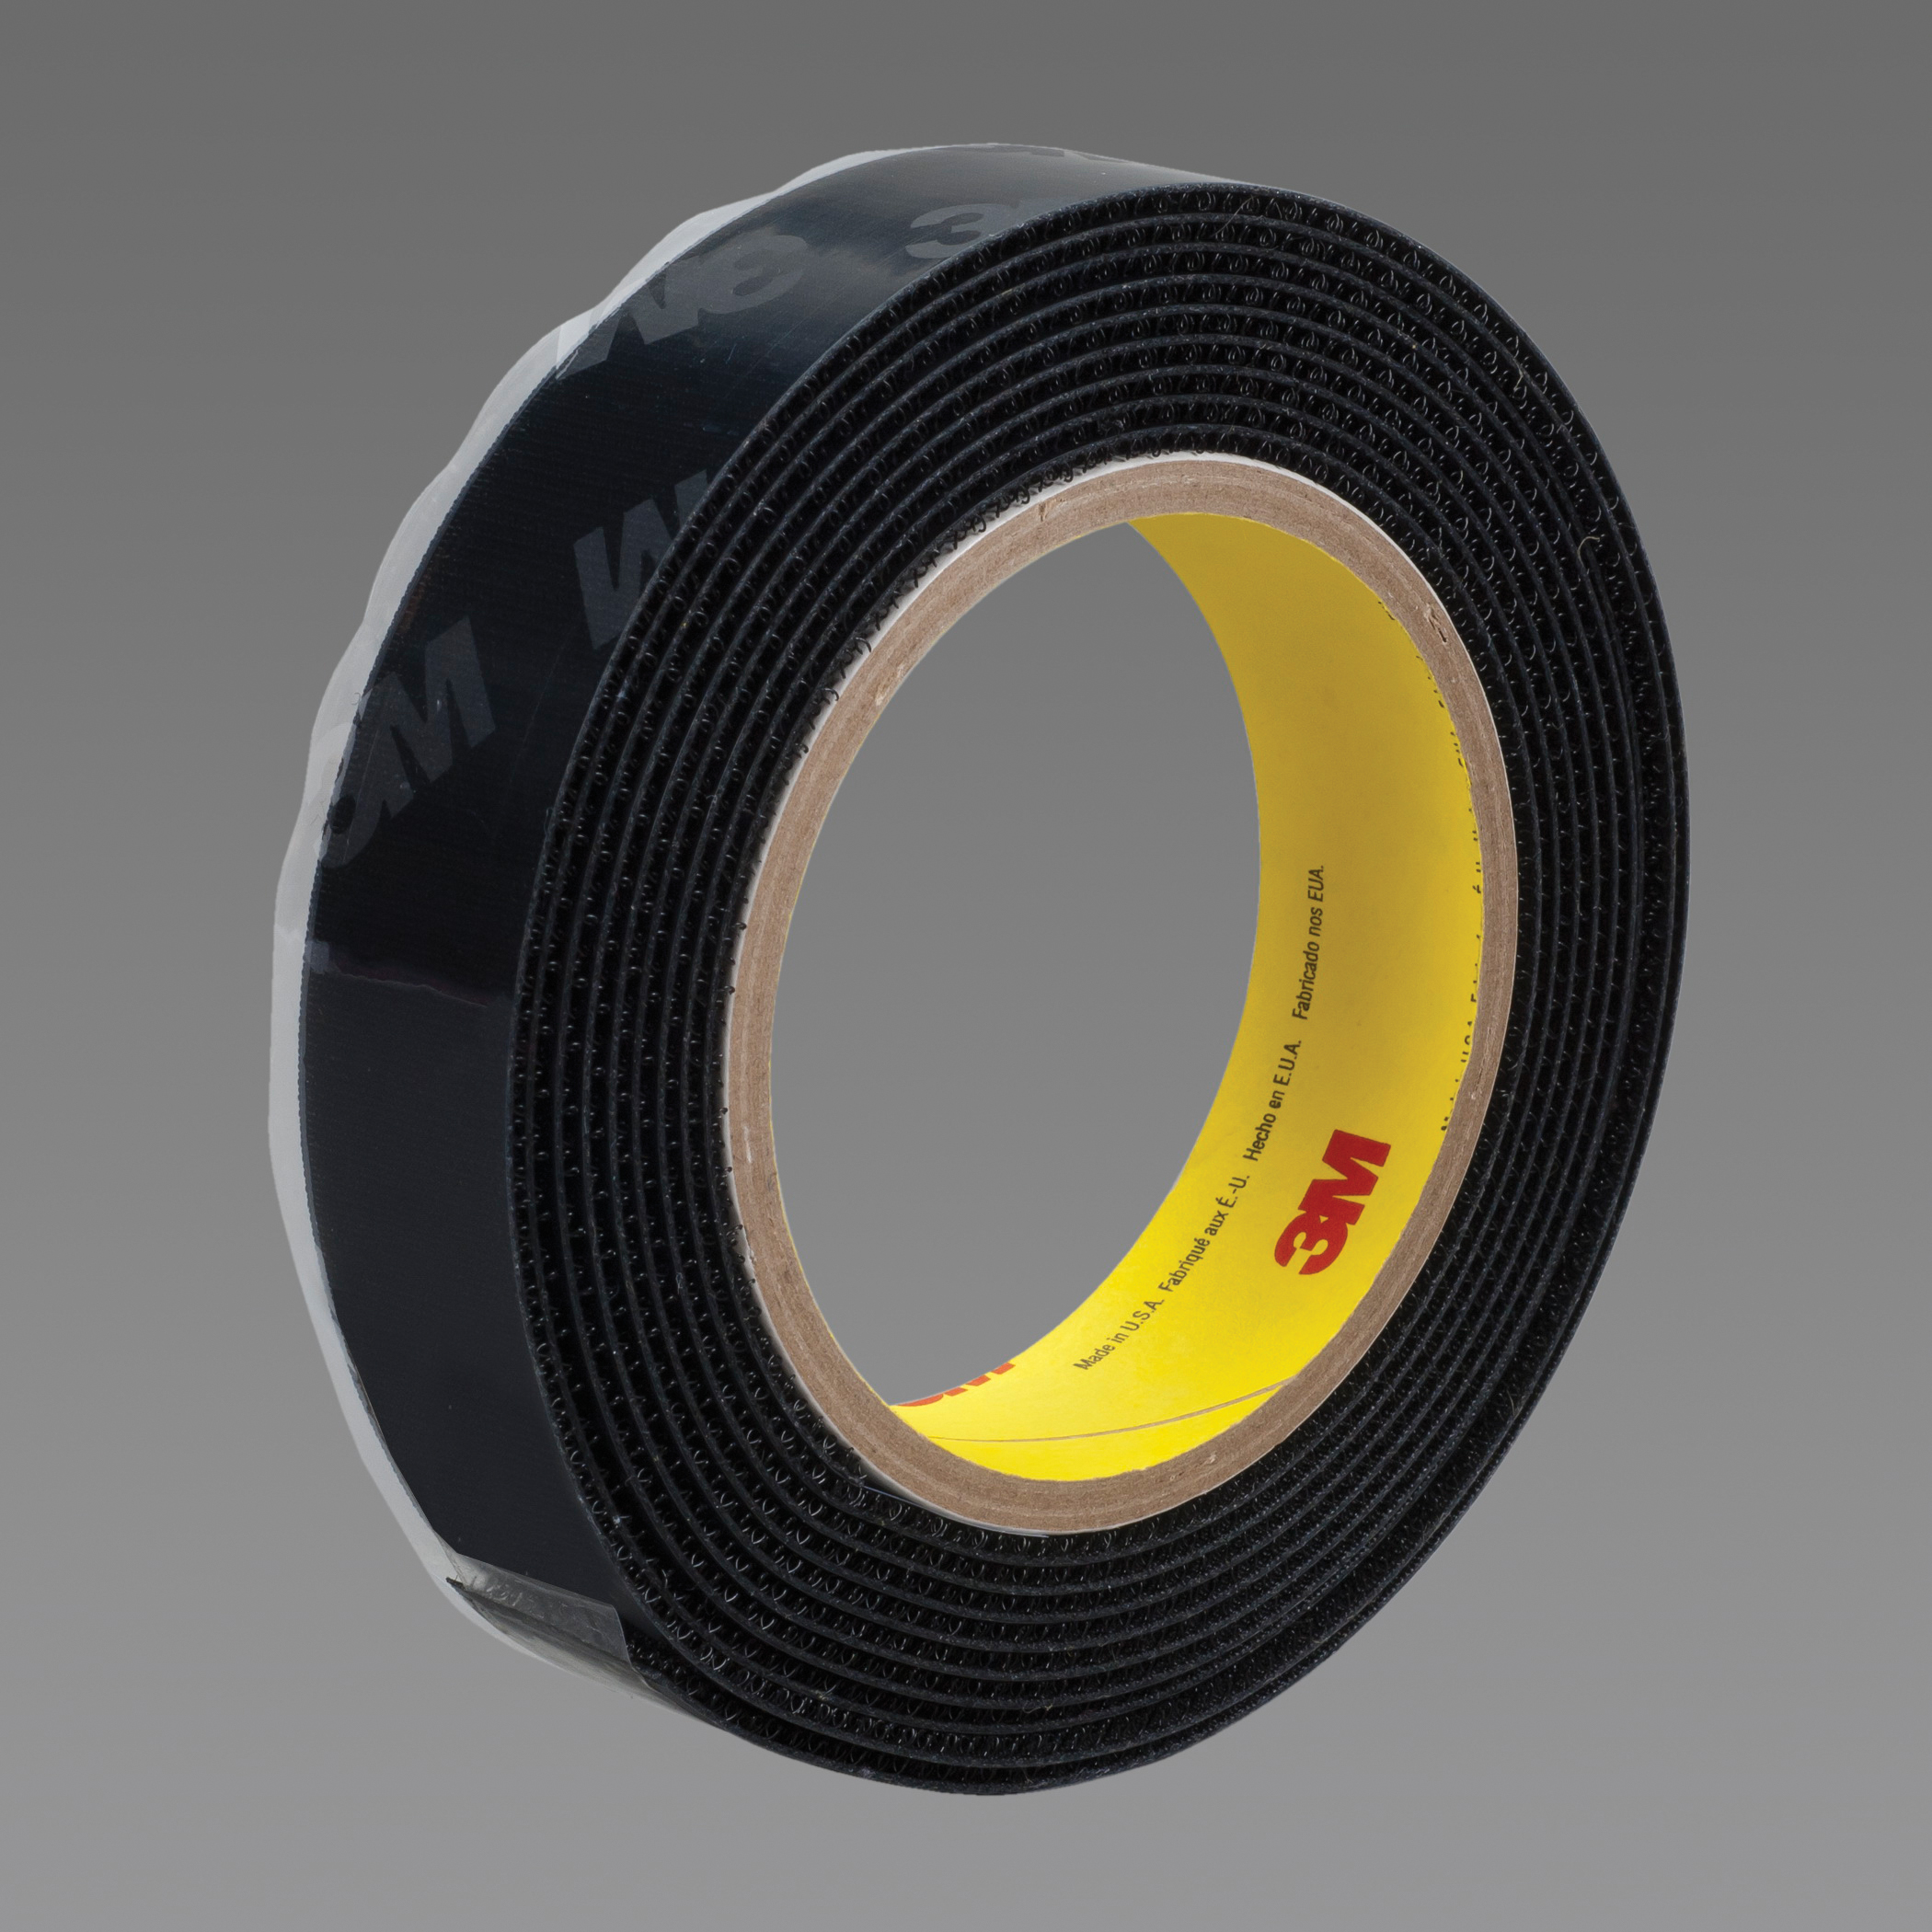 3M™ 021200-65615 General Performance Reclosable Hook Fastener Tape, 50 yd L x 2 in W, 0.15 in THK Engaged, High Tack Rubber Adhesive, Woven Nylon Backing, Black